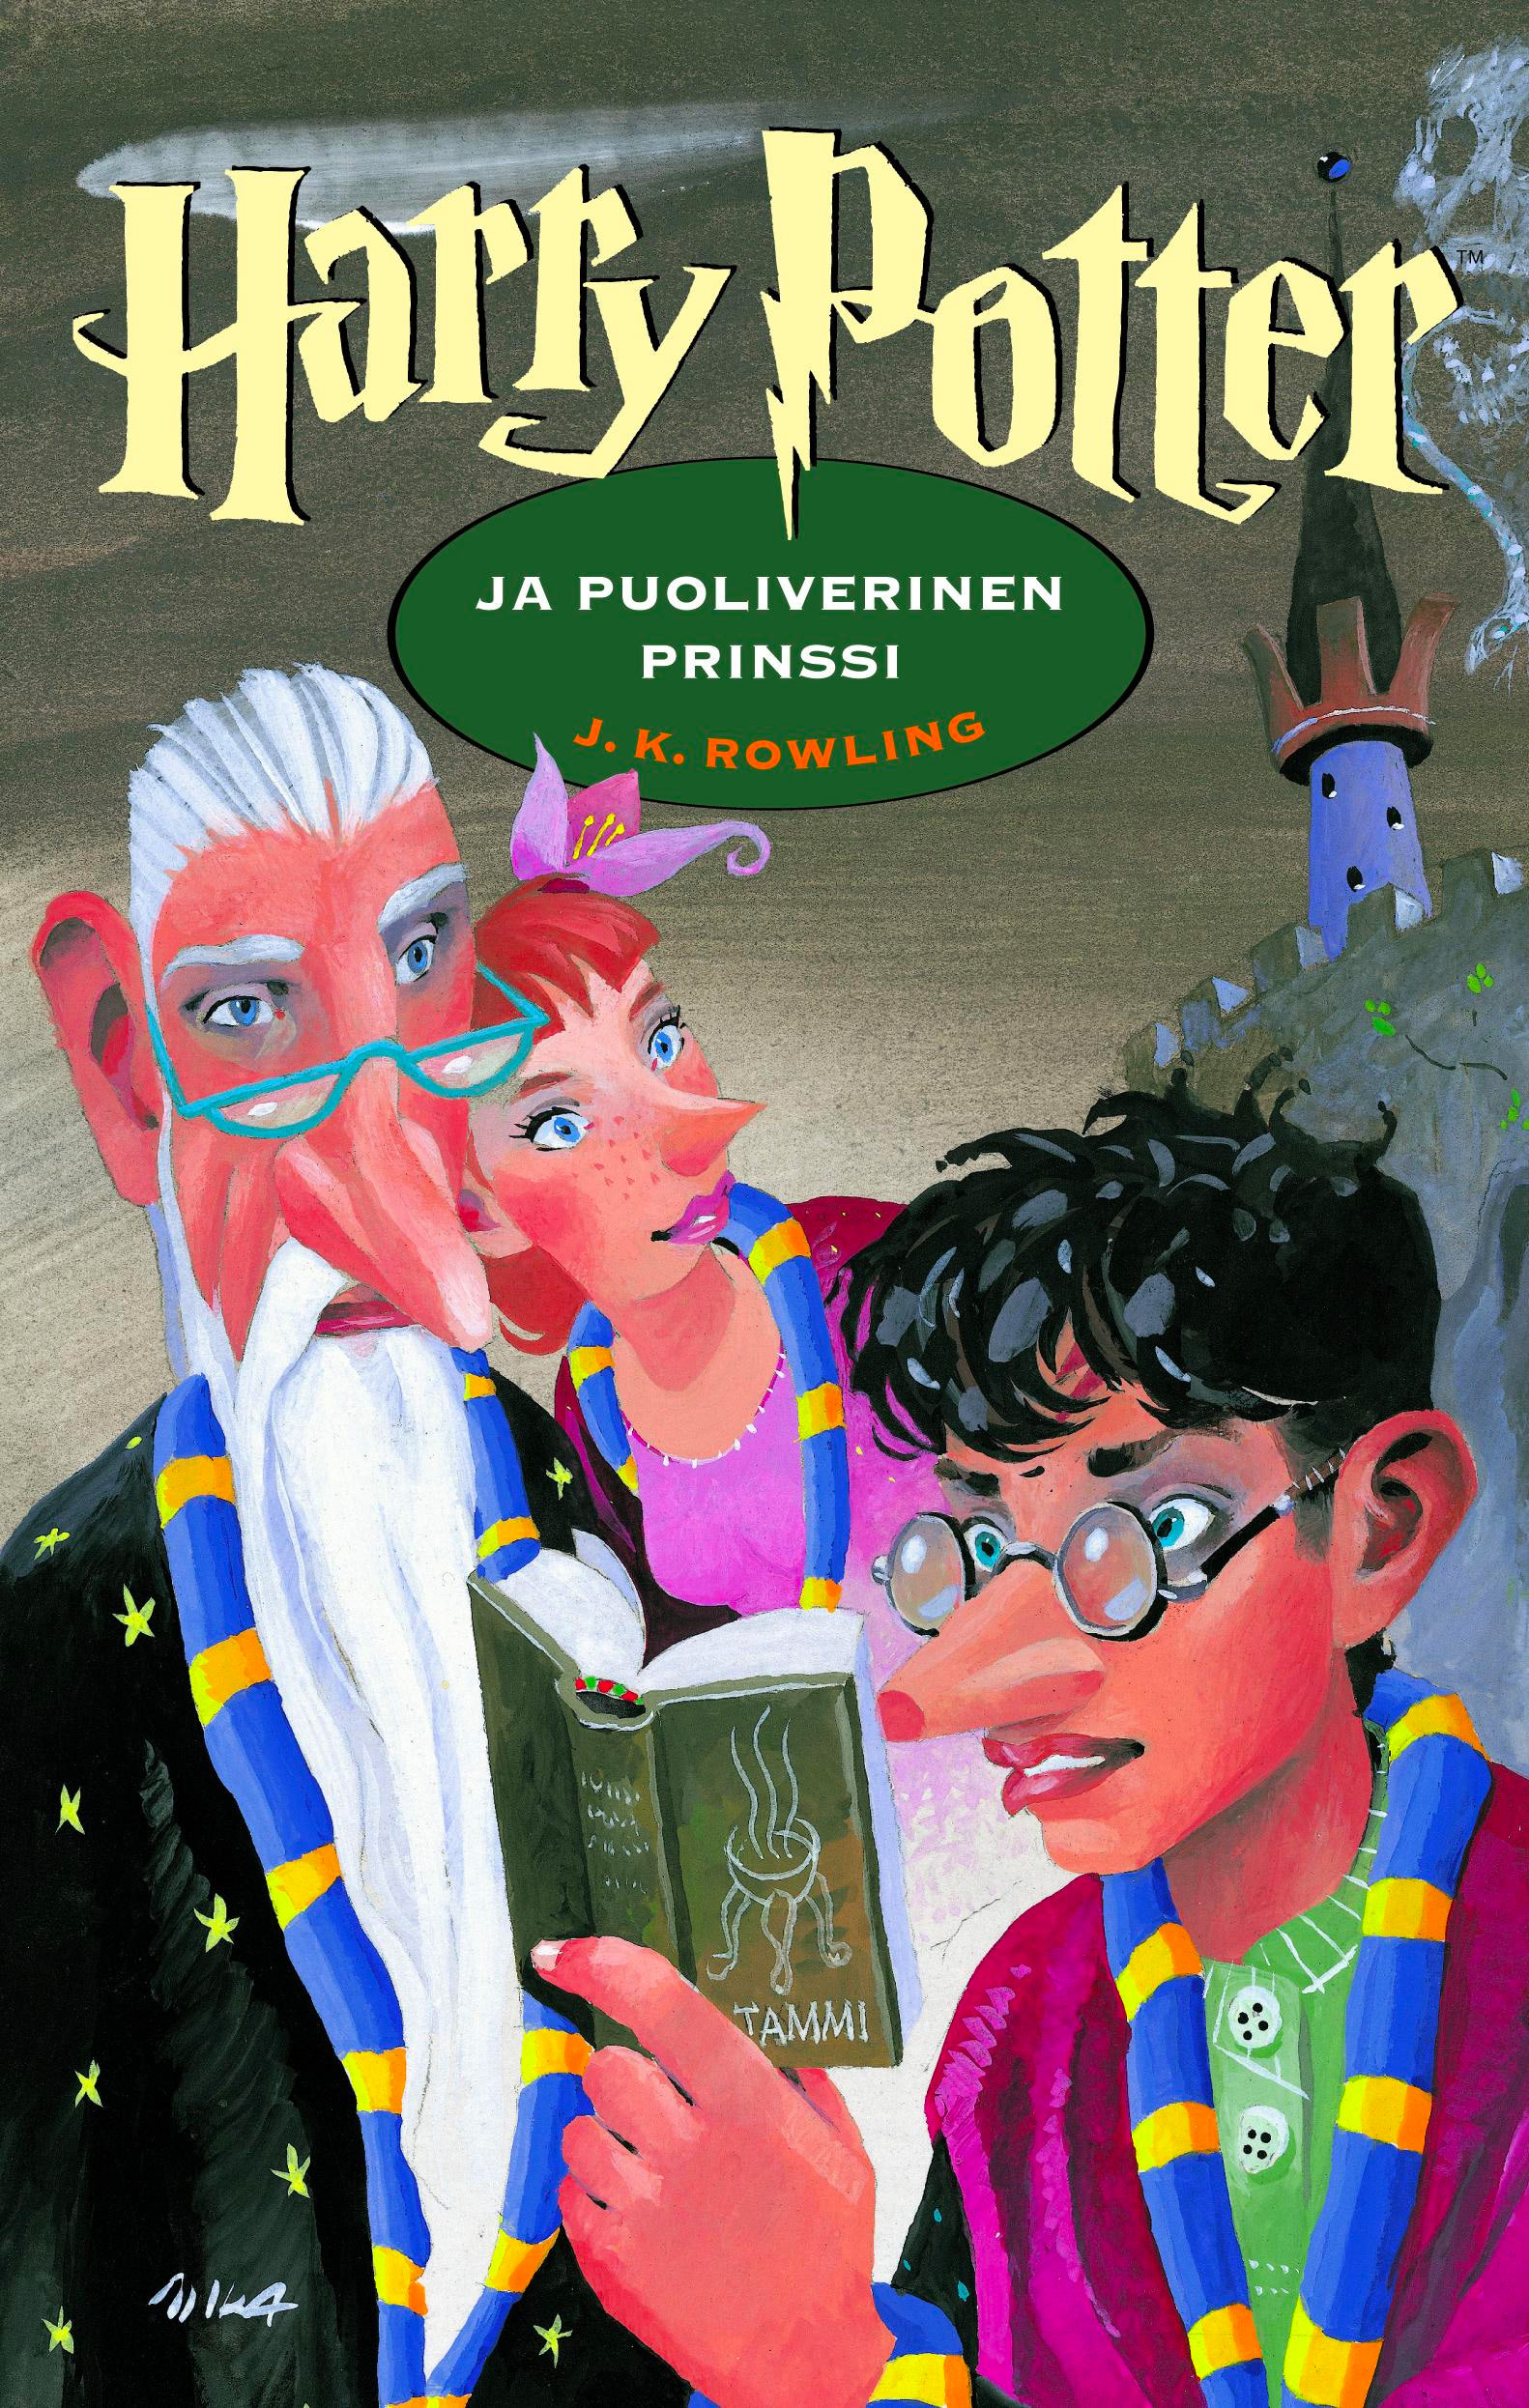 'Half-Blood Prince' Finnish edition